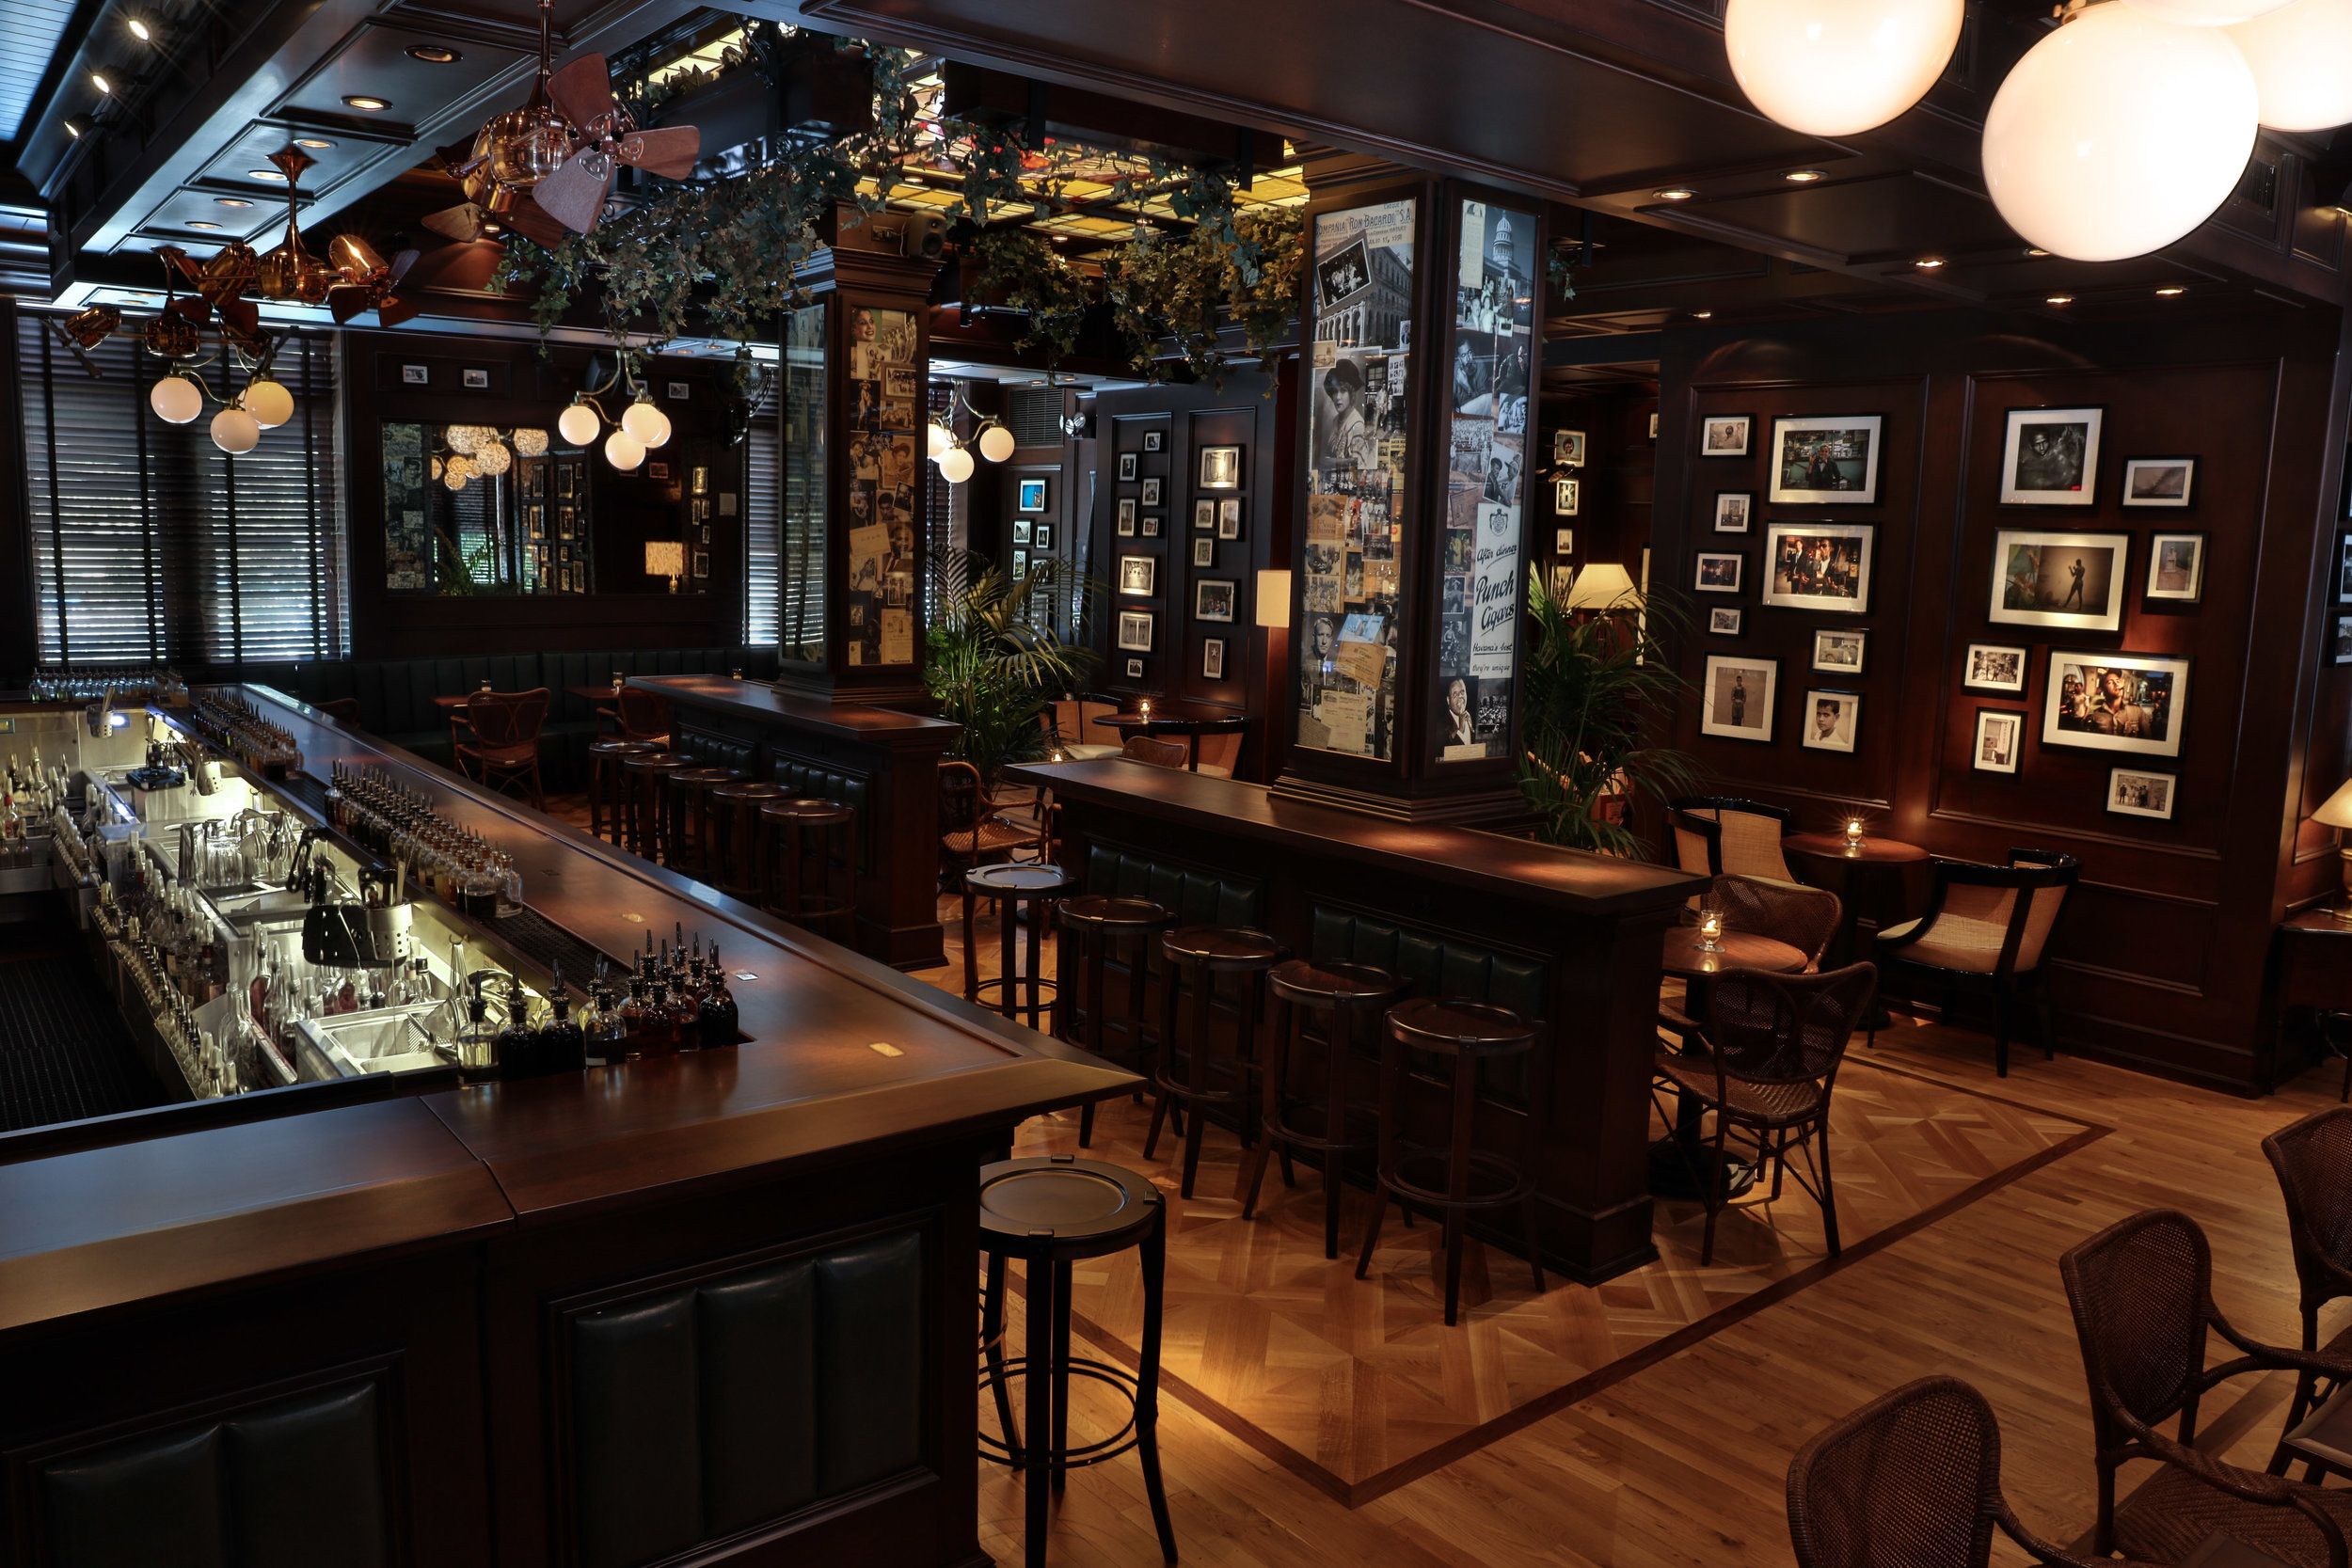 BLACKTAIL-BEST-BAR-IN-THE-WORLD